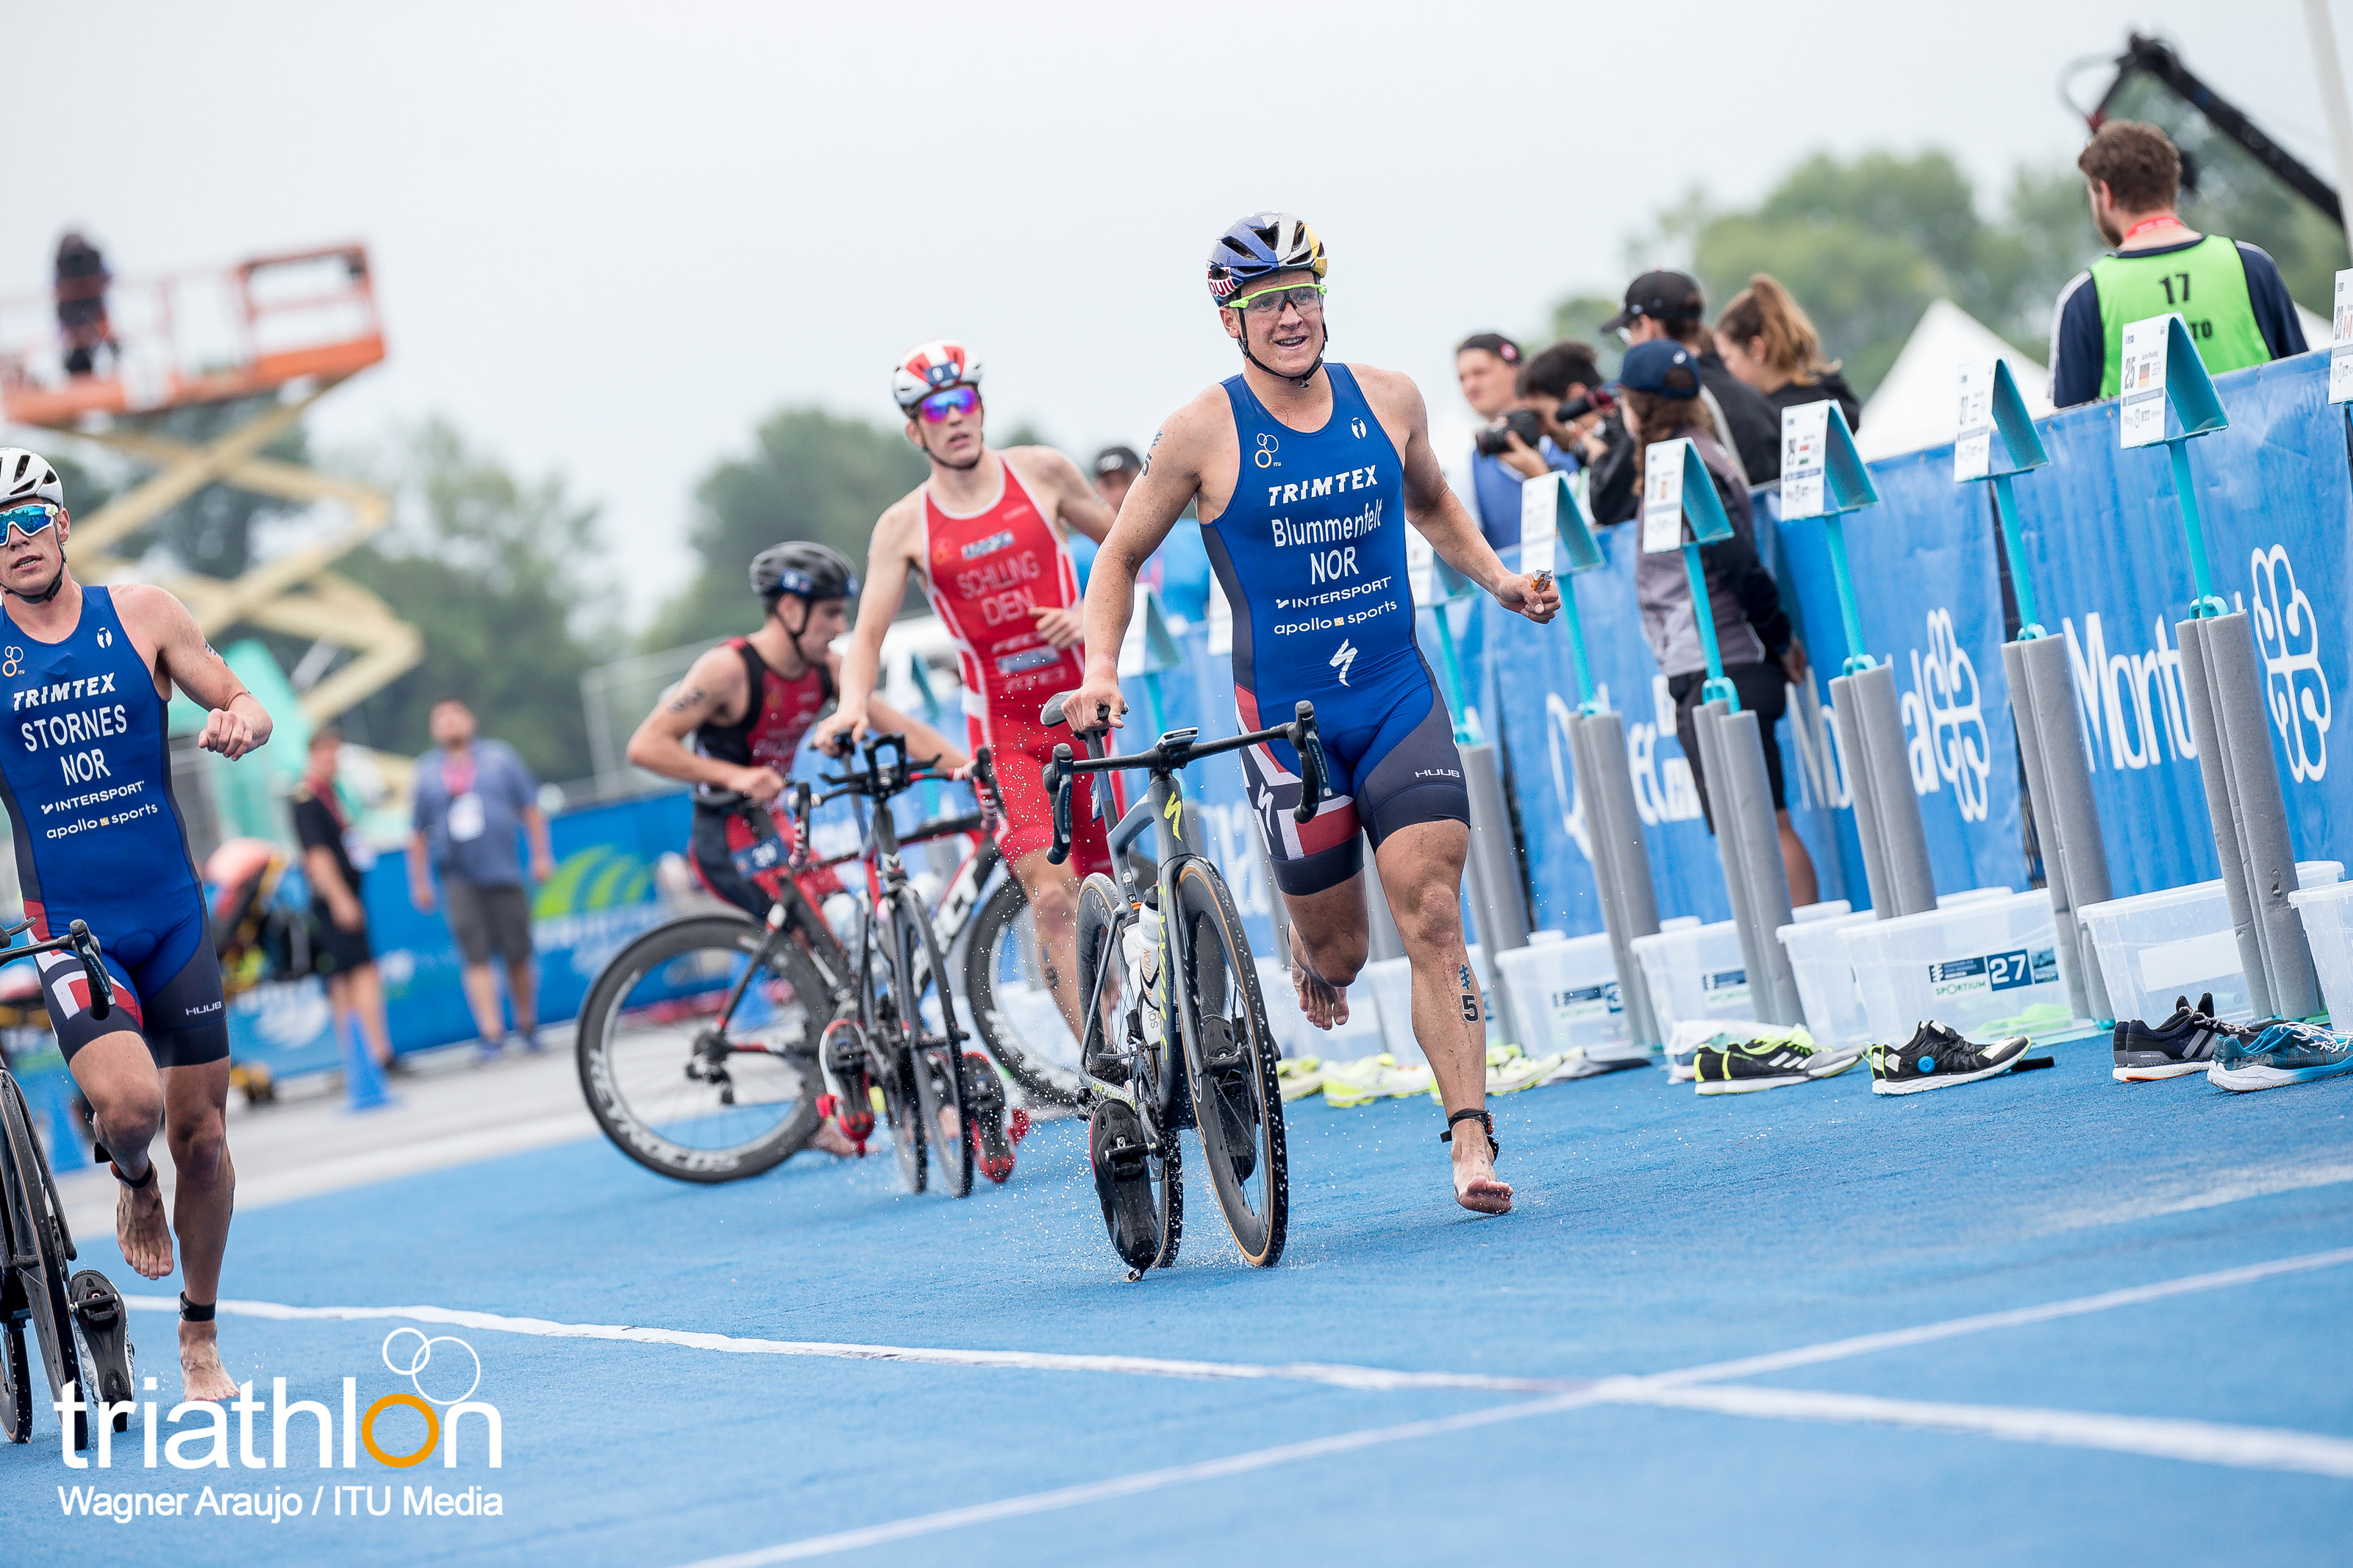 WTS Montreal Welcomes Elite Men for Penultimate race of